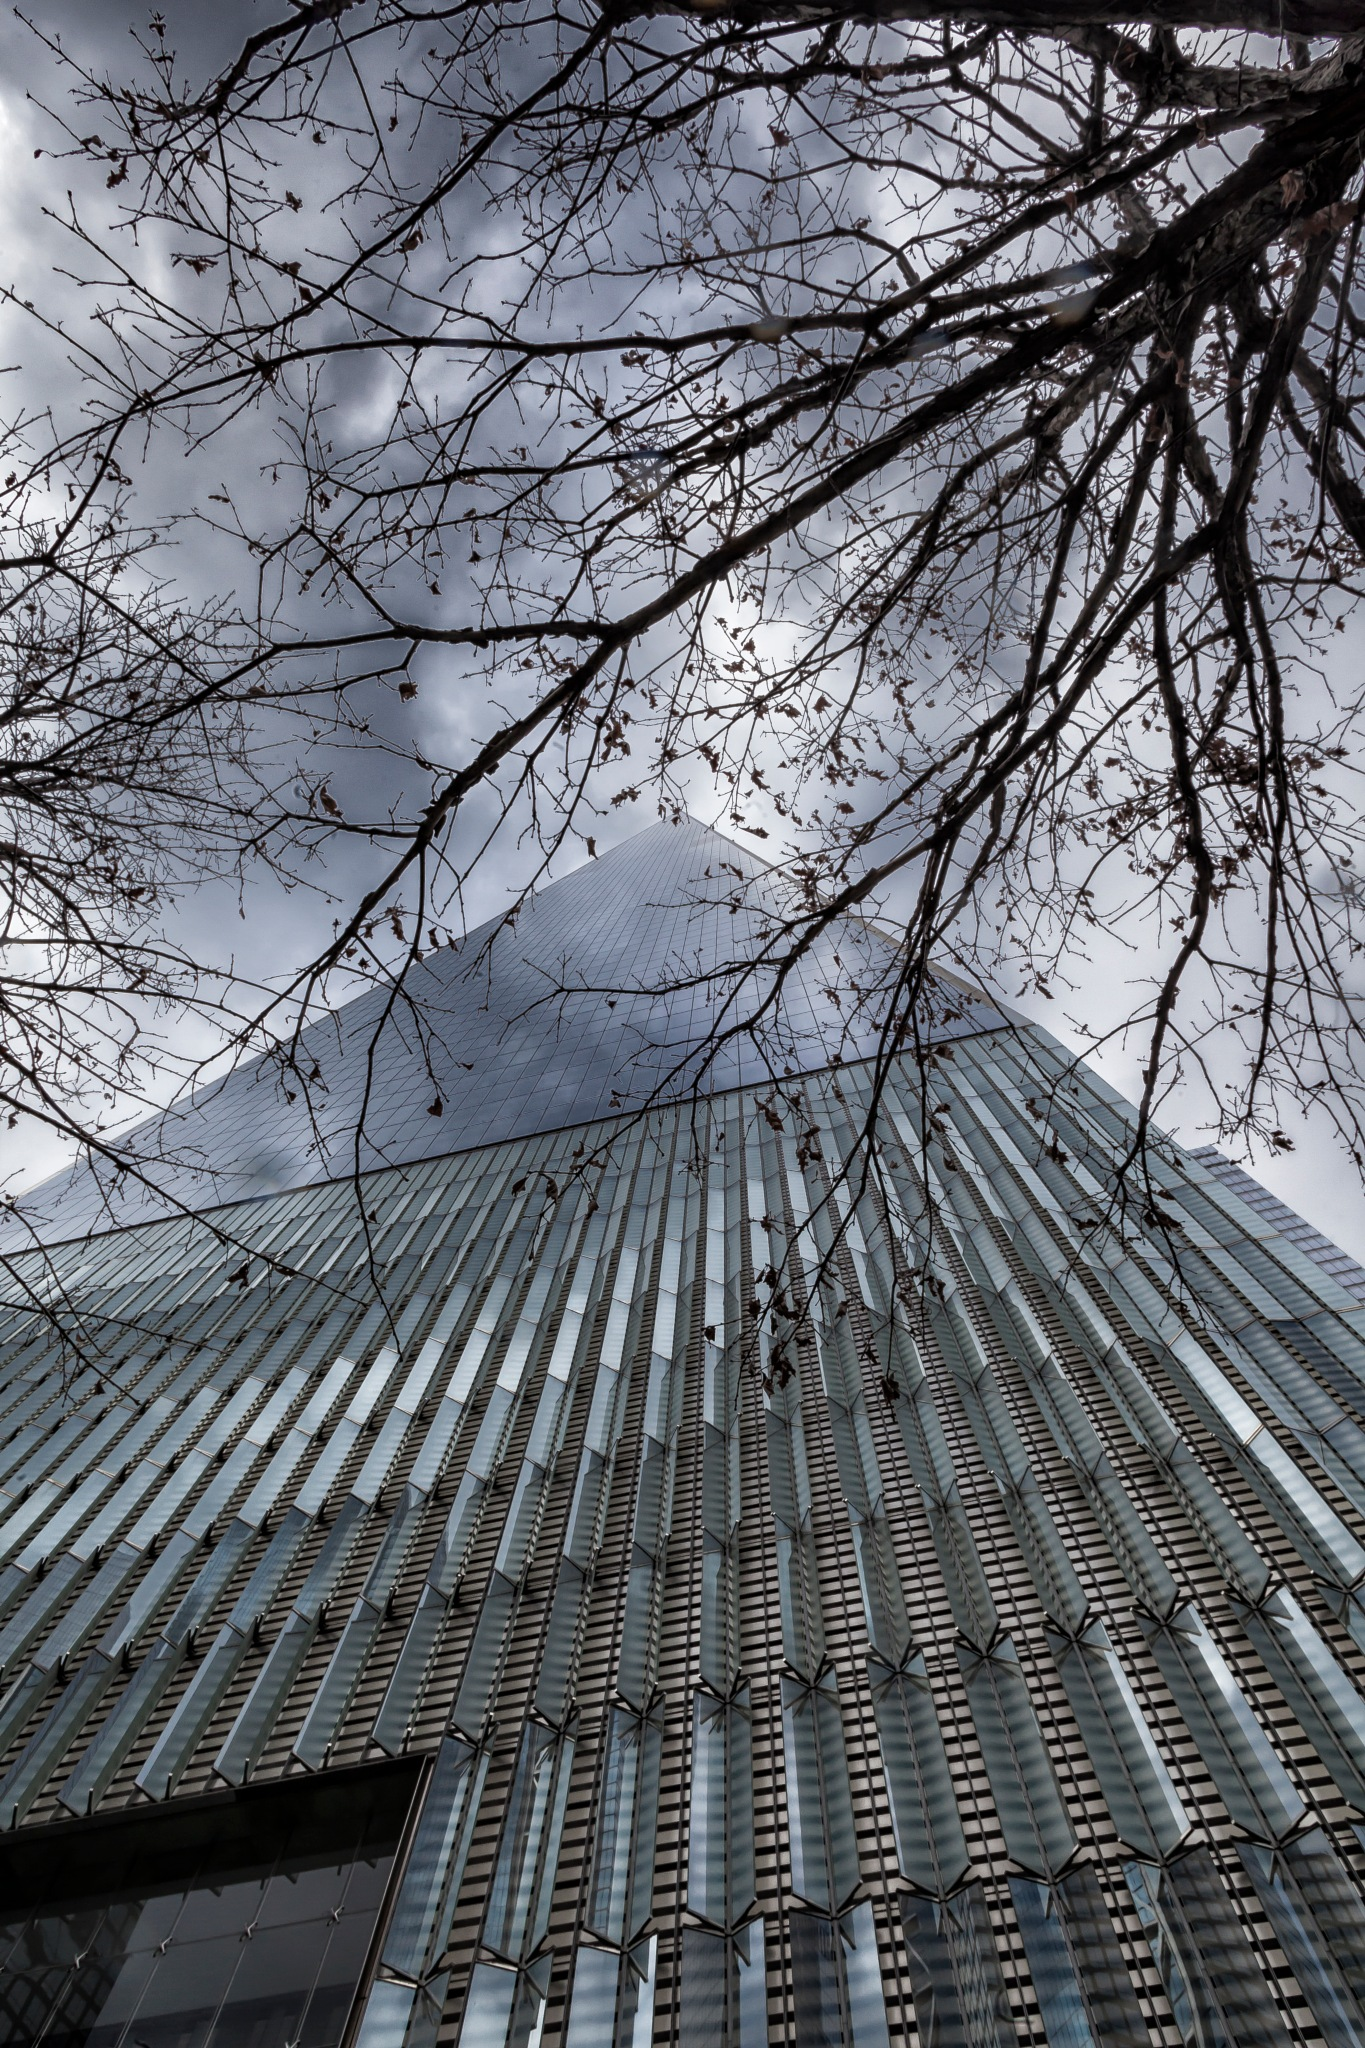 World Trade Building and Trees by robertullmann